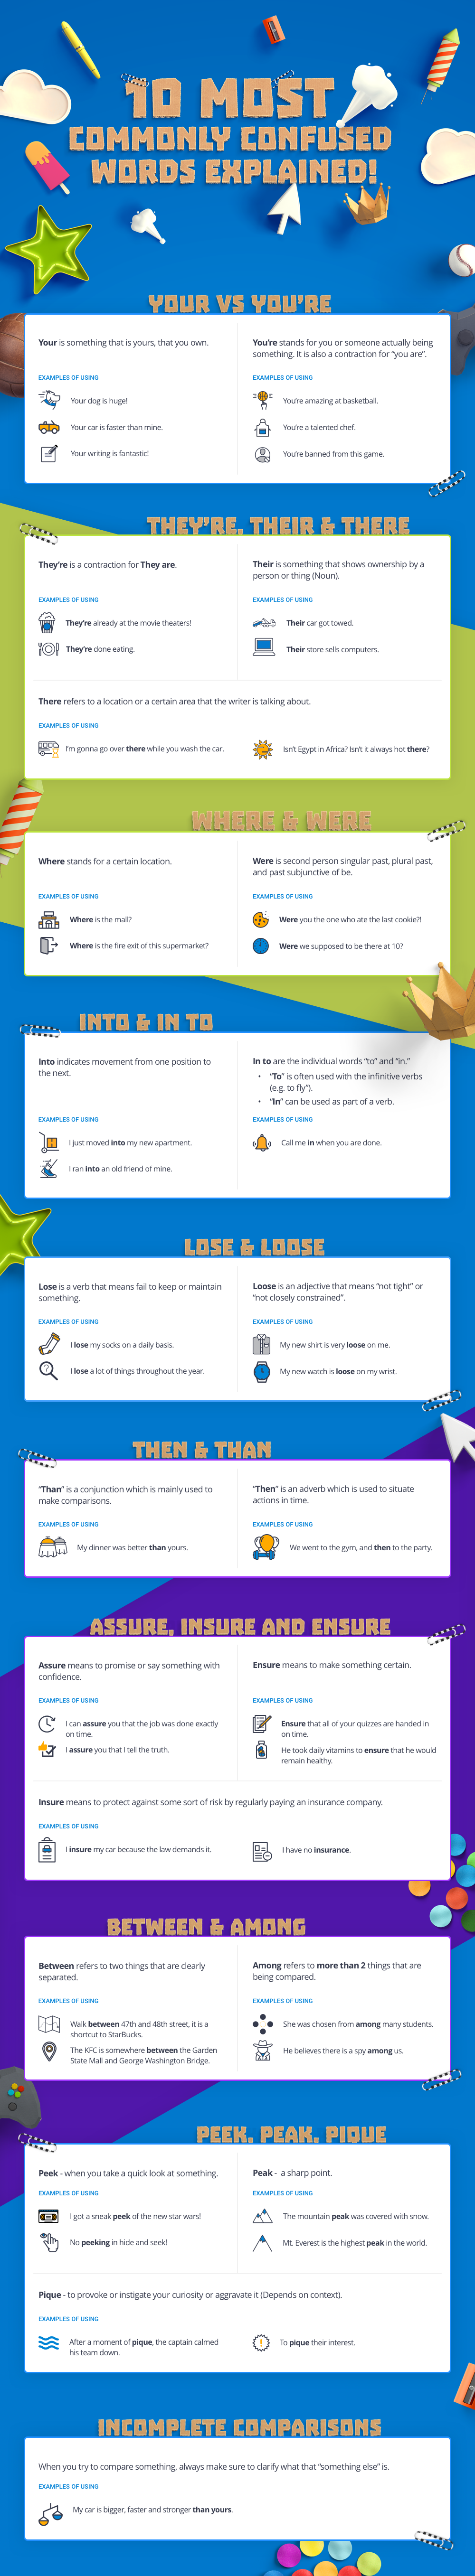 Meanings and Spellings of Commonly Confused Words - Infographic